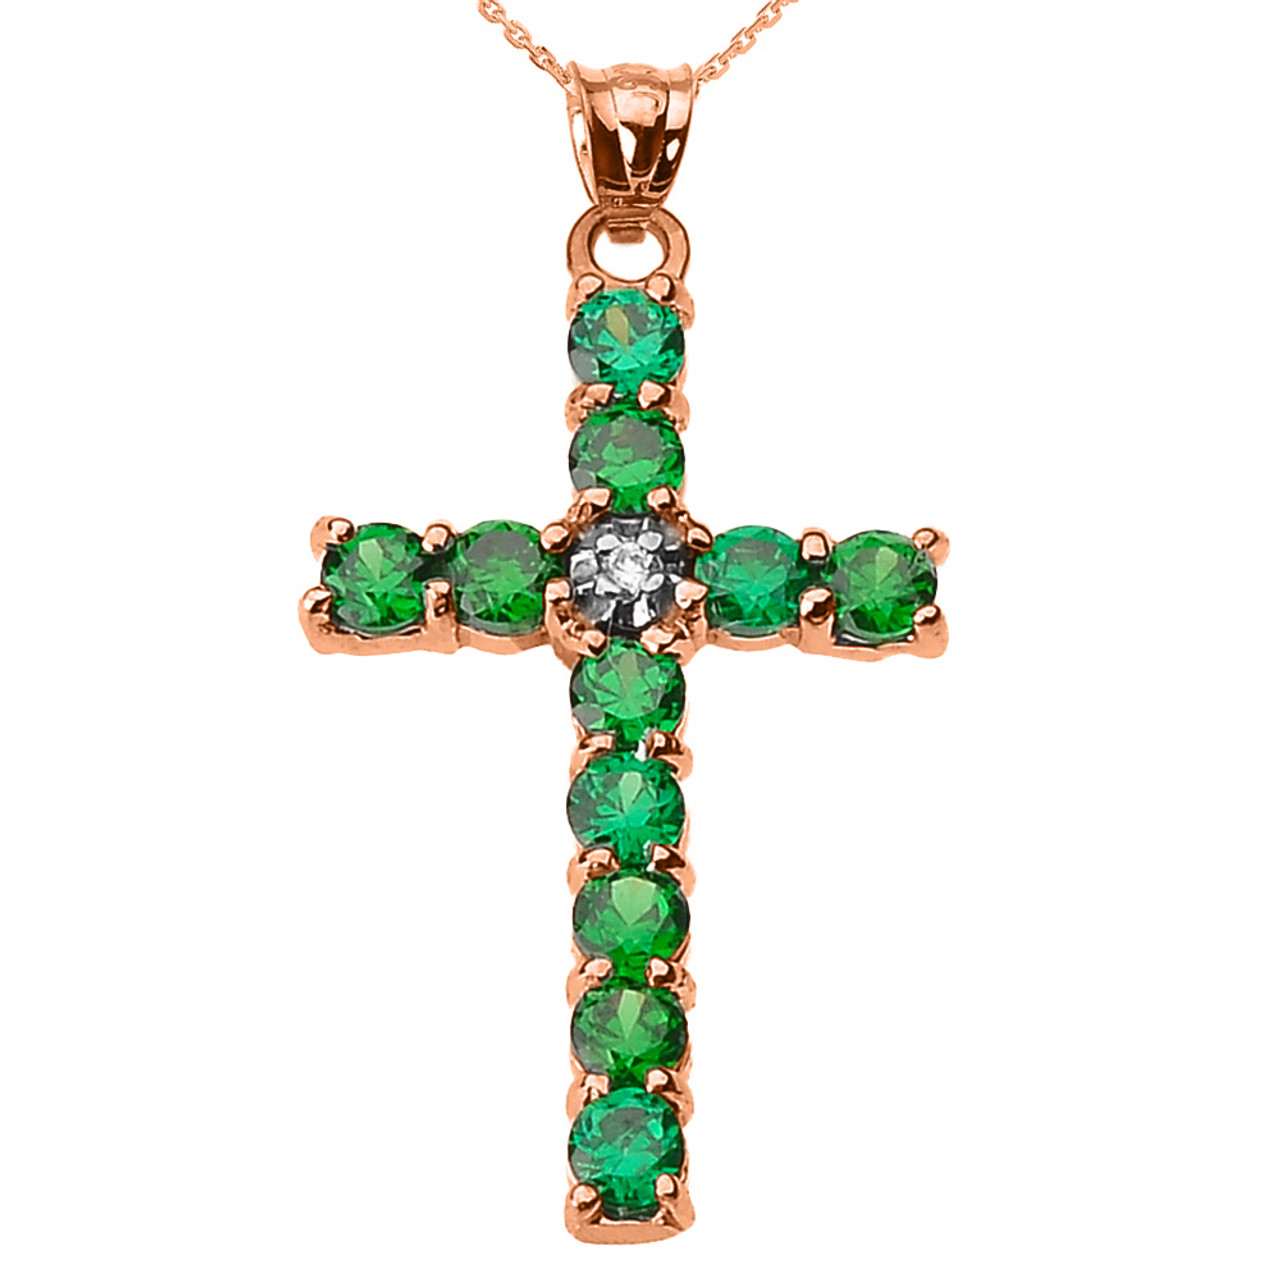 10k Rose Gold Diamond and Green CZ Cross Pendant Necklace 5abfae5c50ee